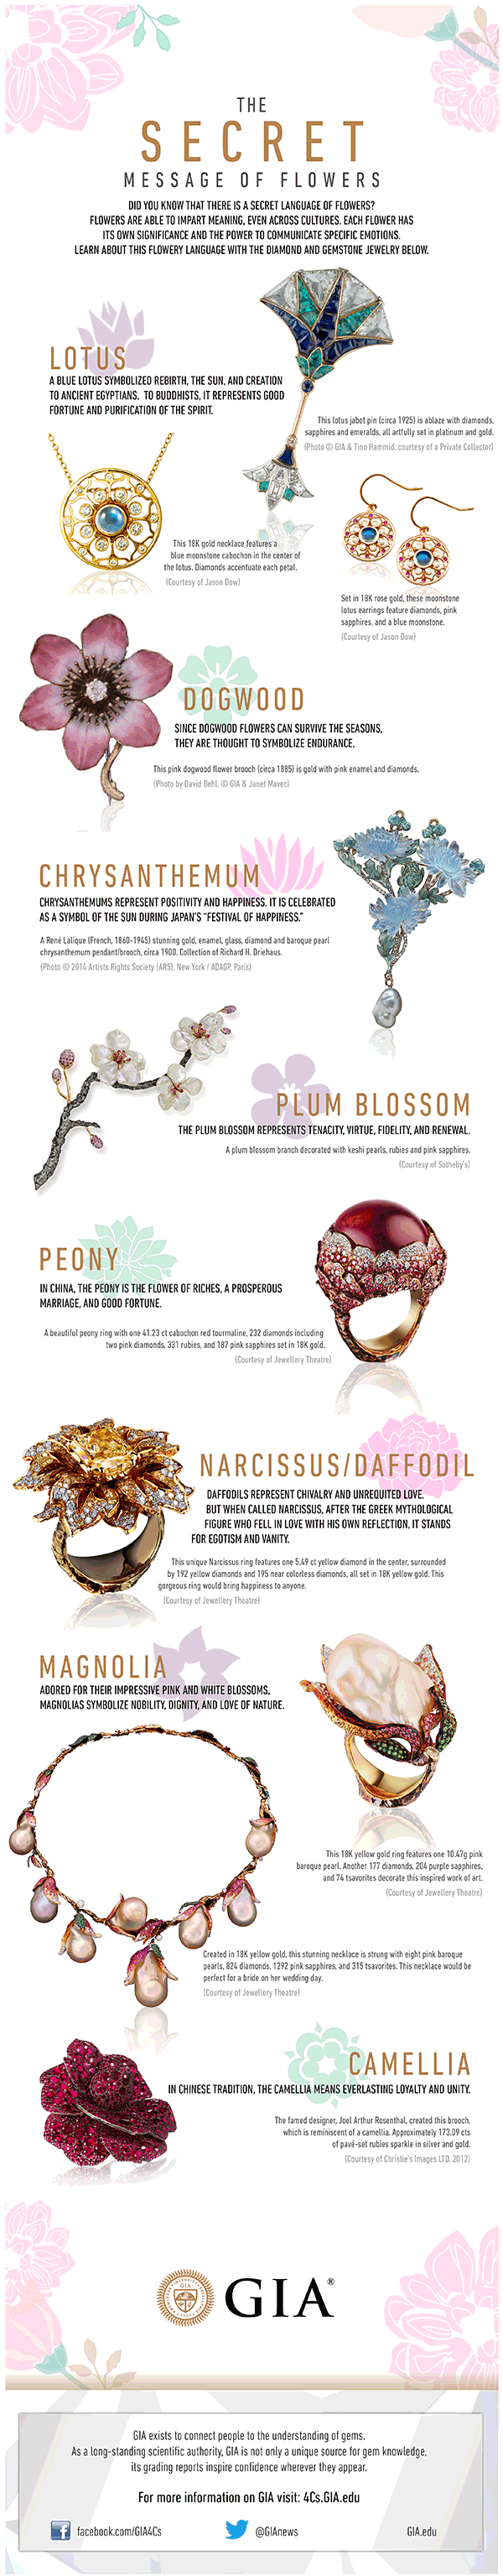 GIA_FlowerInfographic_Post2_FNL